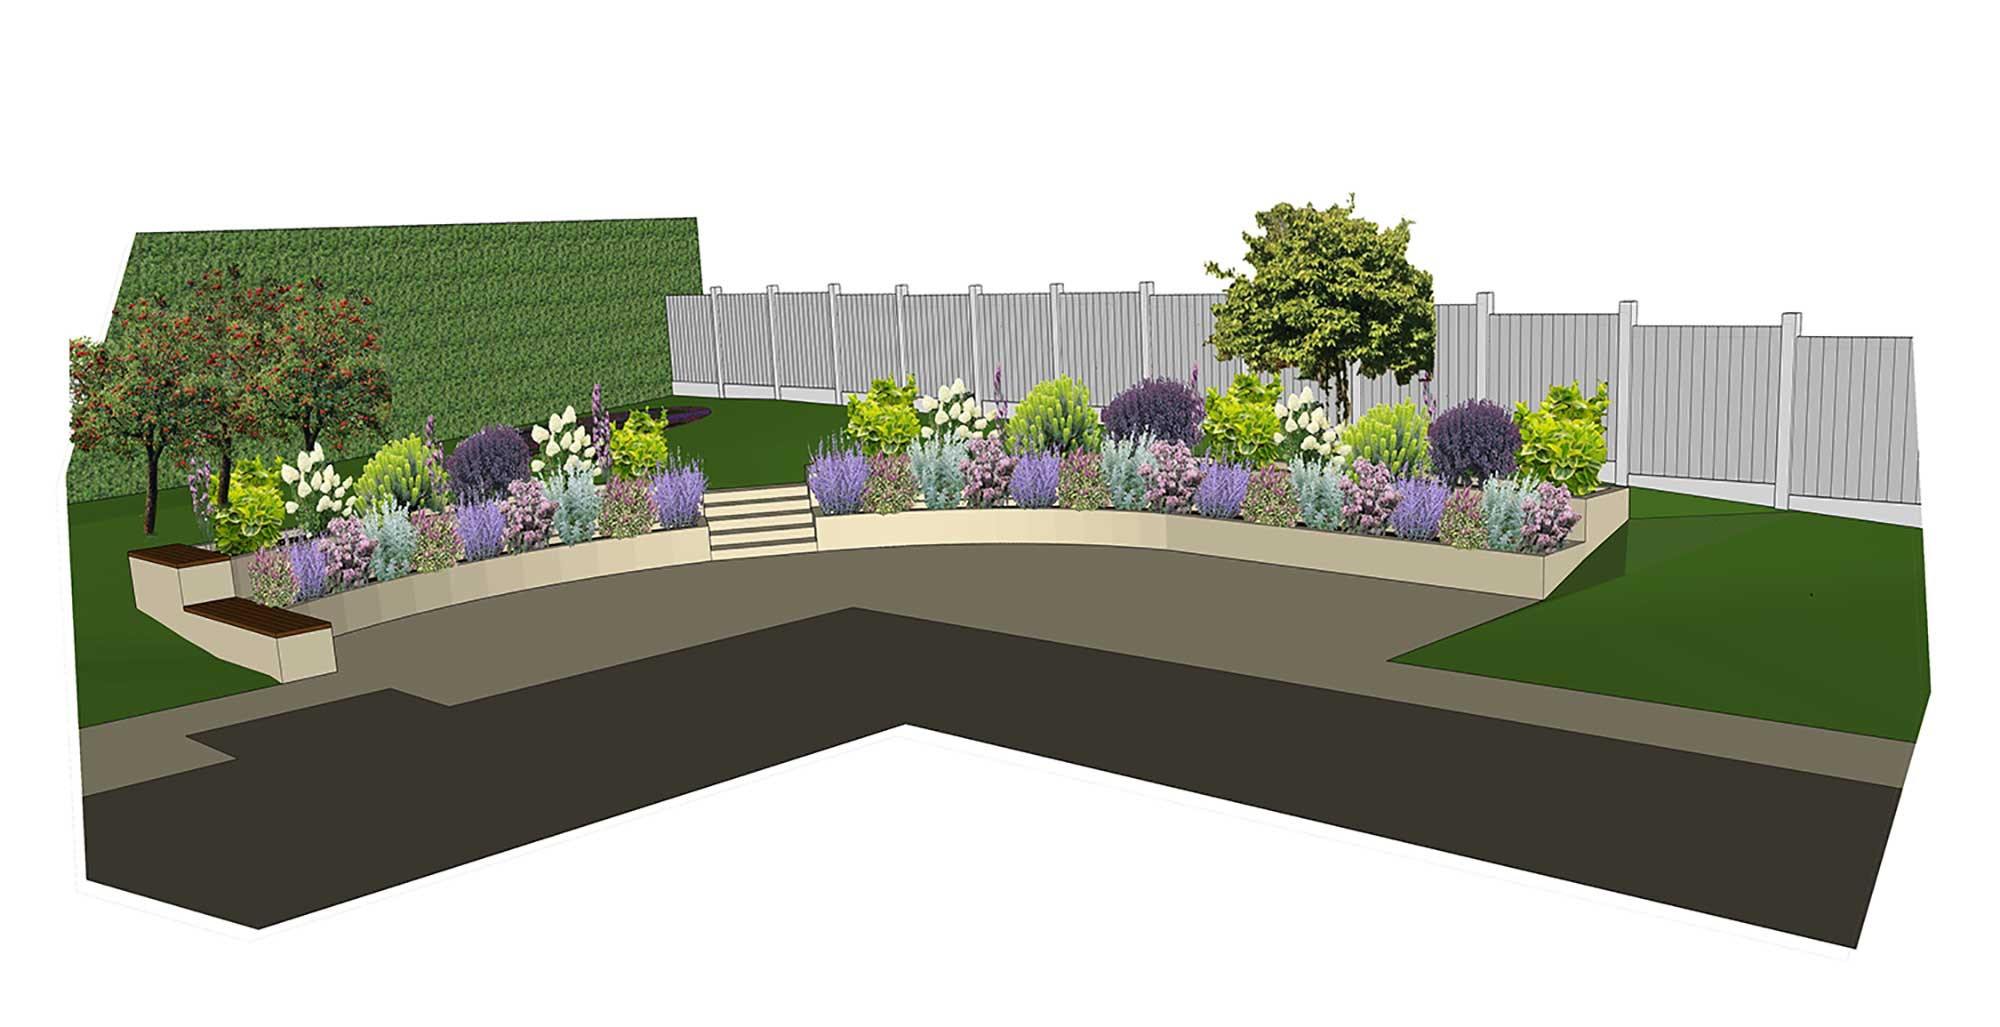 Rear garden design visualisation garden design layout for Garden design ideas in uk